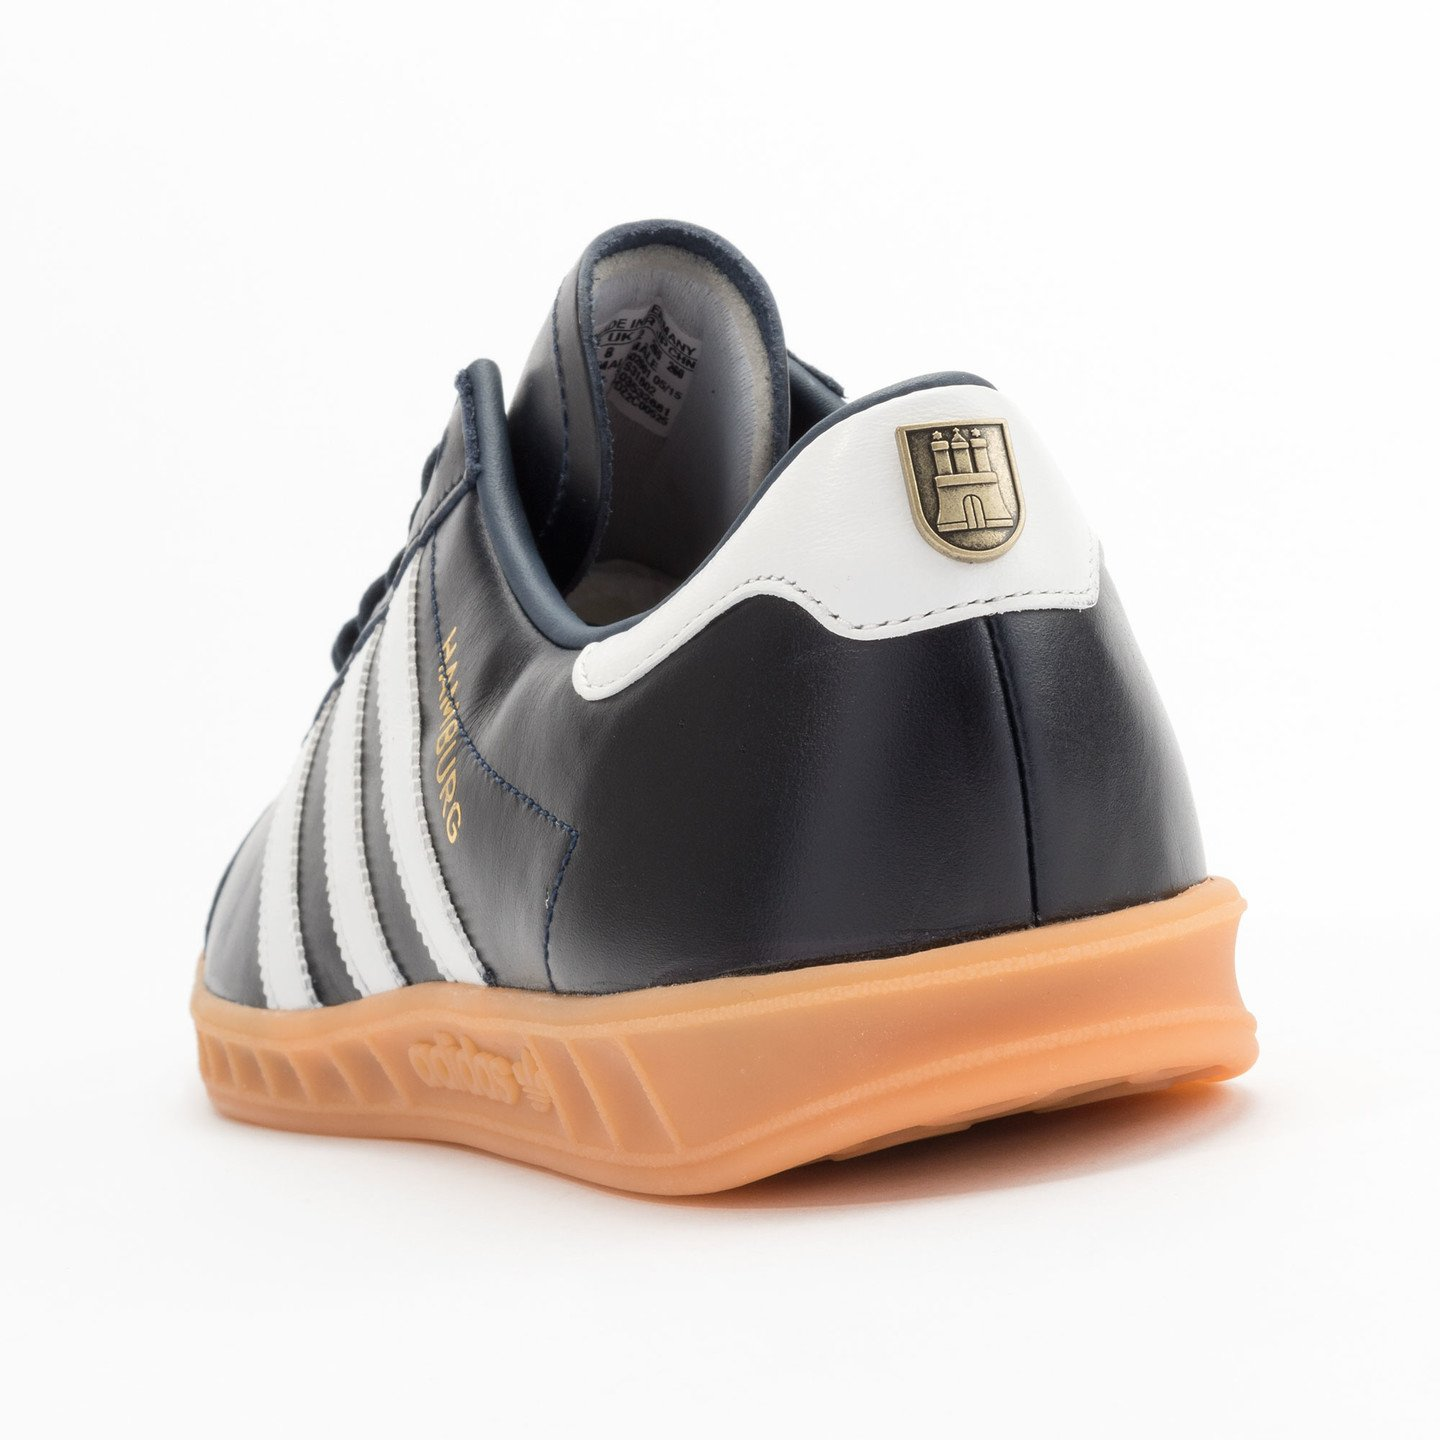 Adidas Hamburg - Made in Germany Navy / White / Gold / Gum S31602-43.33